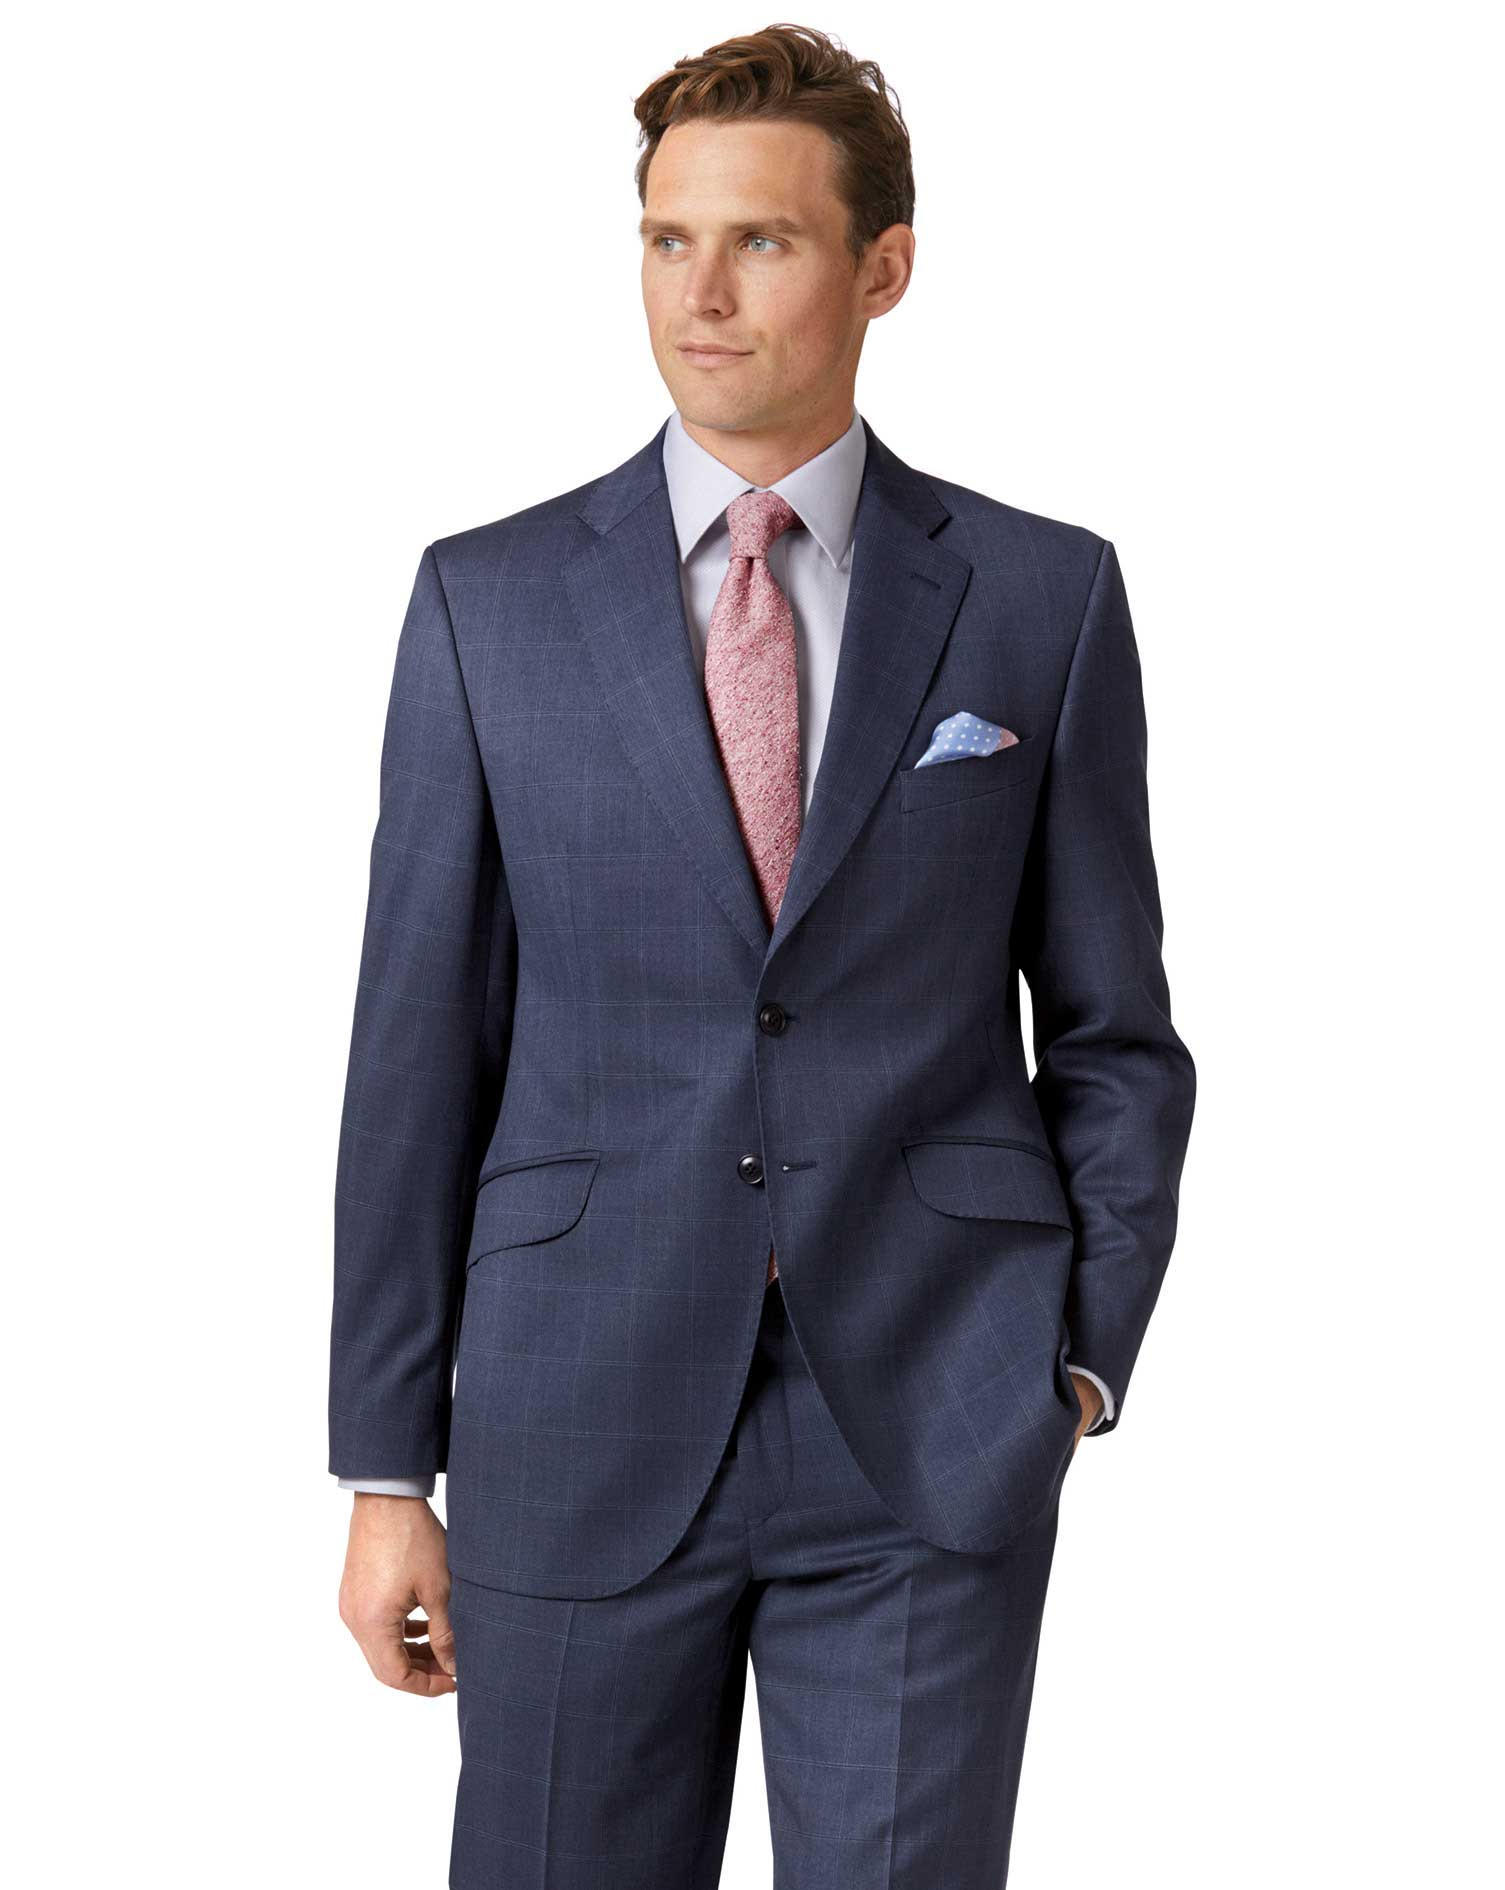 Airforce Blue Classic Fit Italian Suit Wool Jacket Size 42 Long by Charles Tyrwhitt